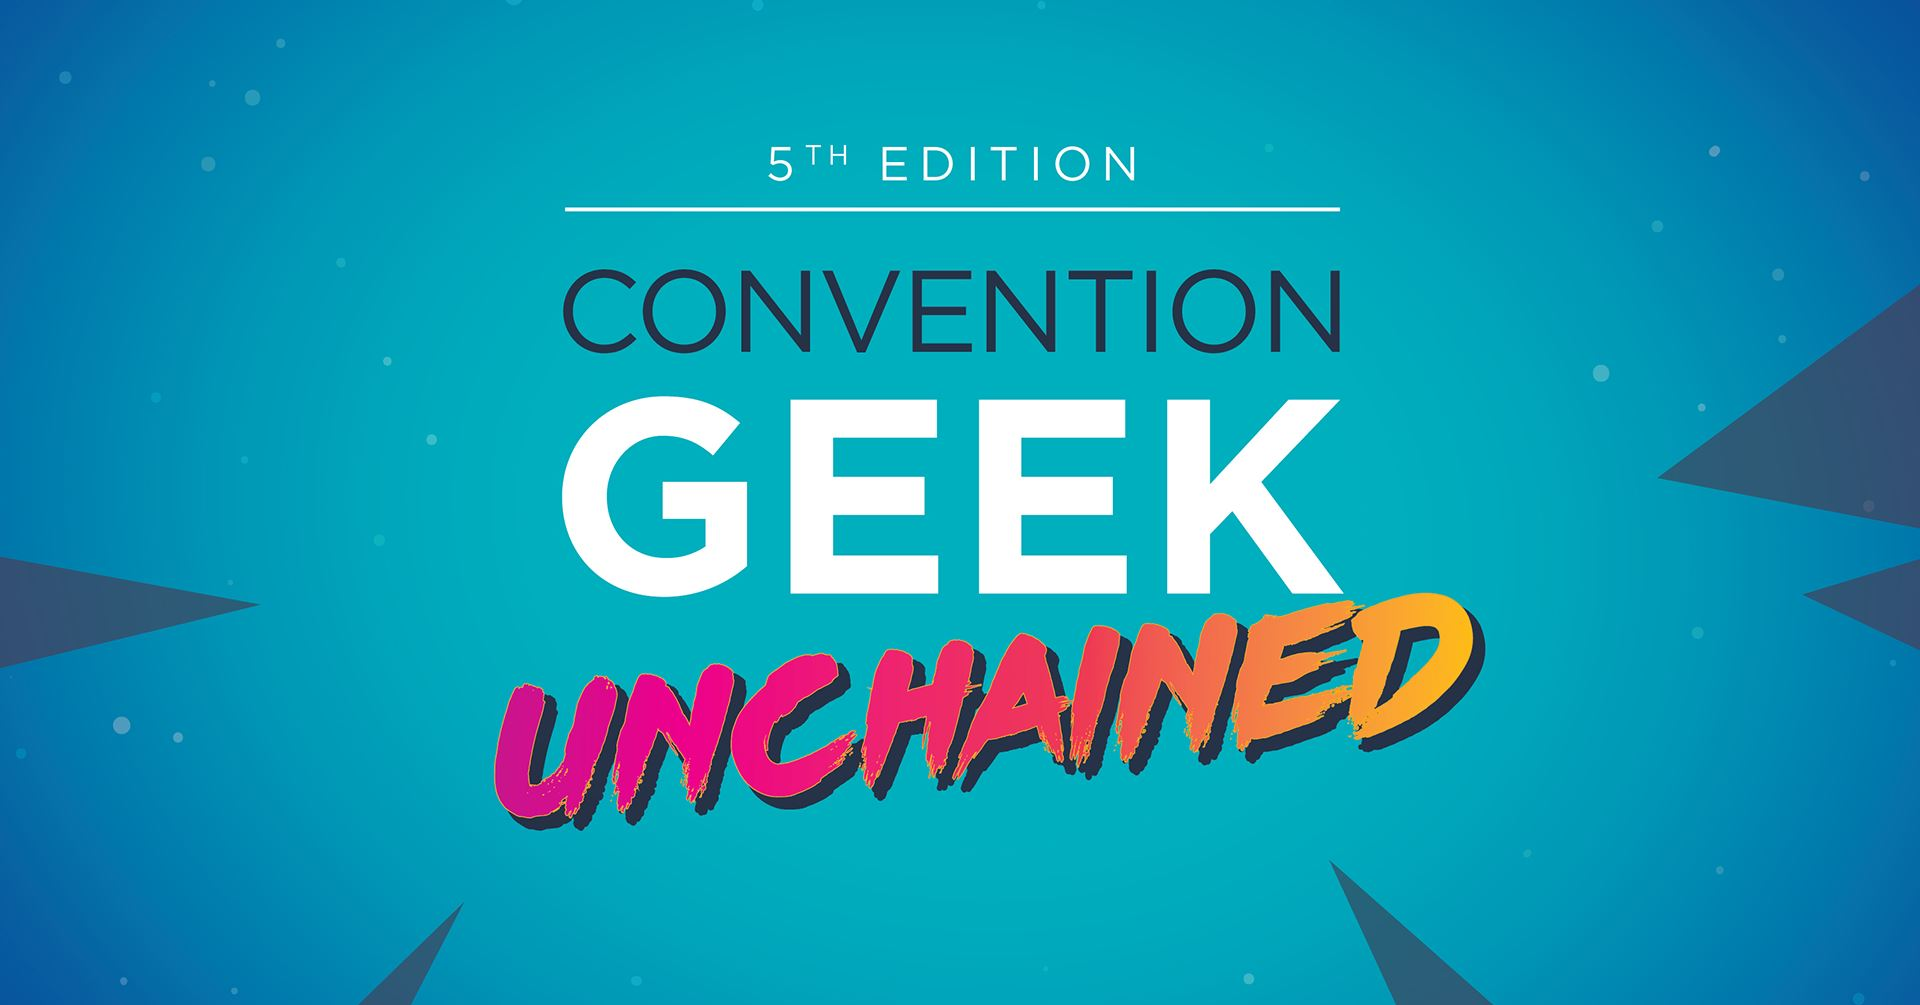 Geek Unchained